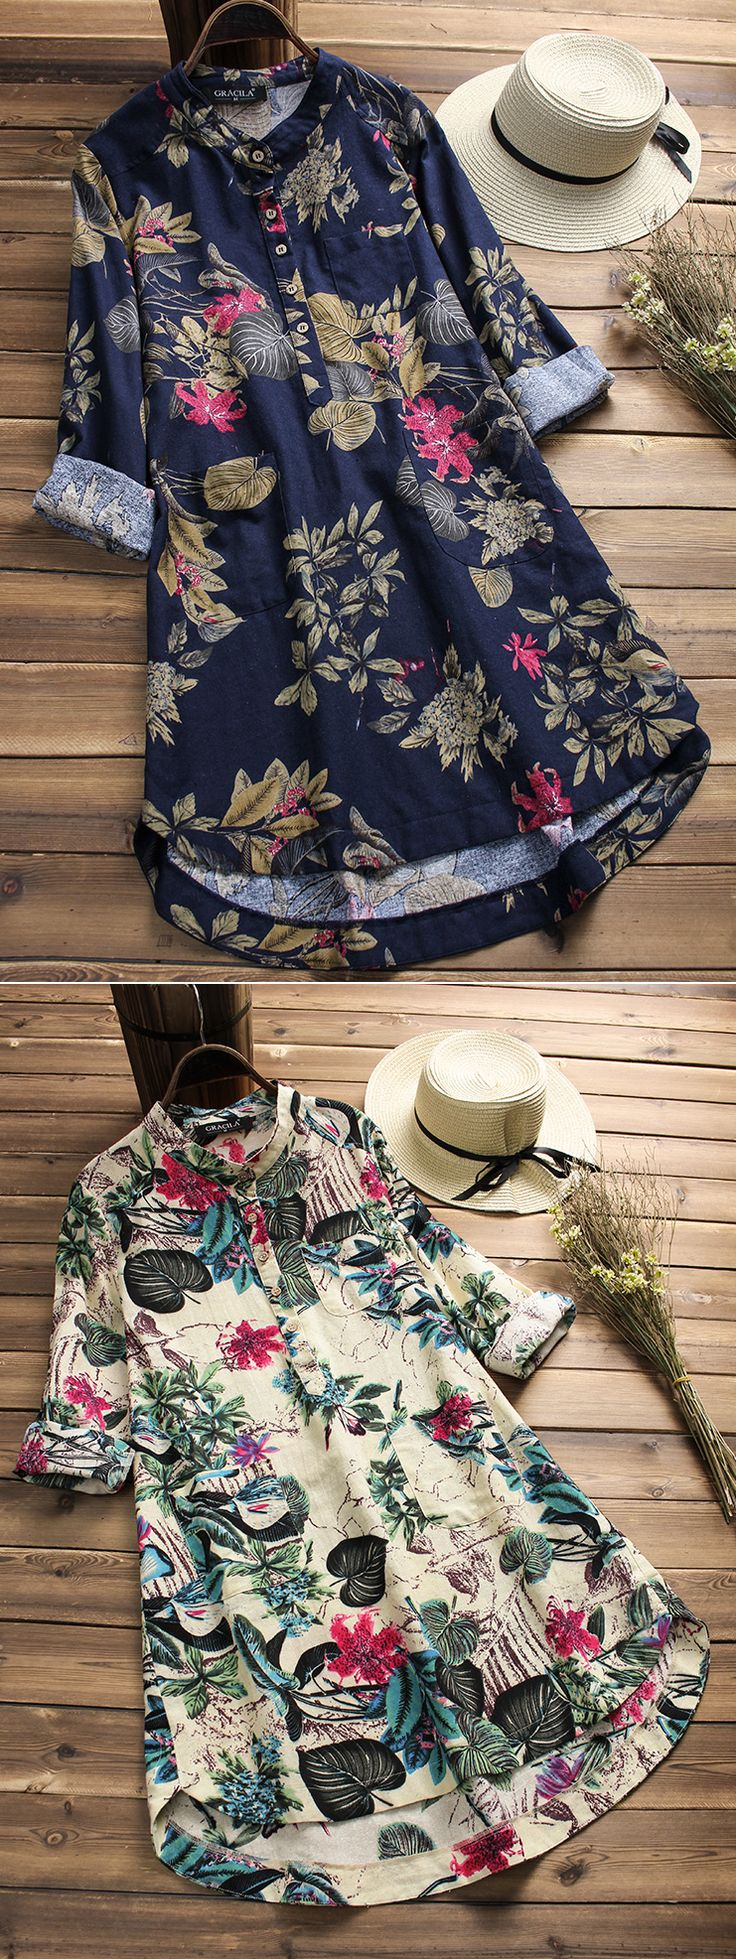 UP TO 49% OFF! Women Floral Printed Stand Collar Mid-Long Vintage Blouses. SHOP NOW!